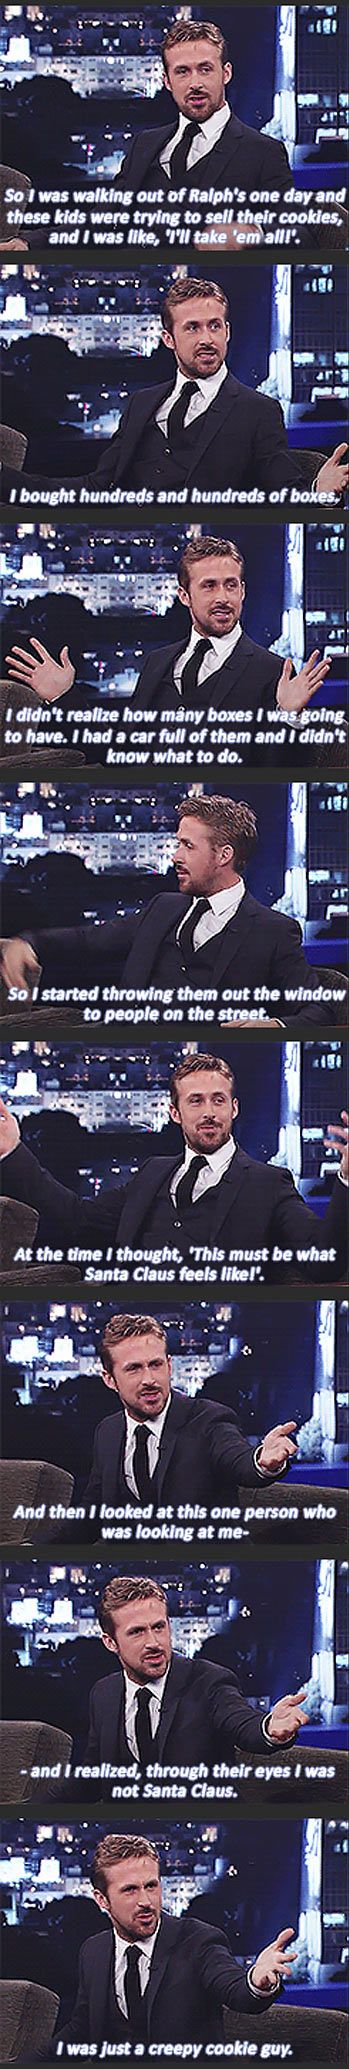 That is hilarious. I would totally accept a cookie from Ryan Gosling.